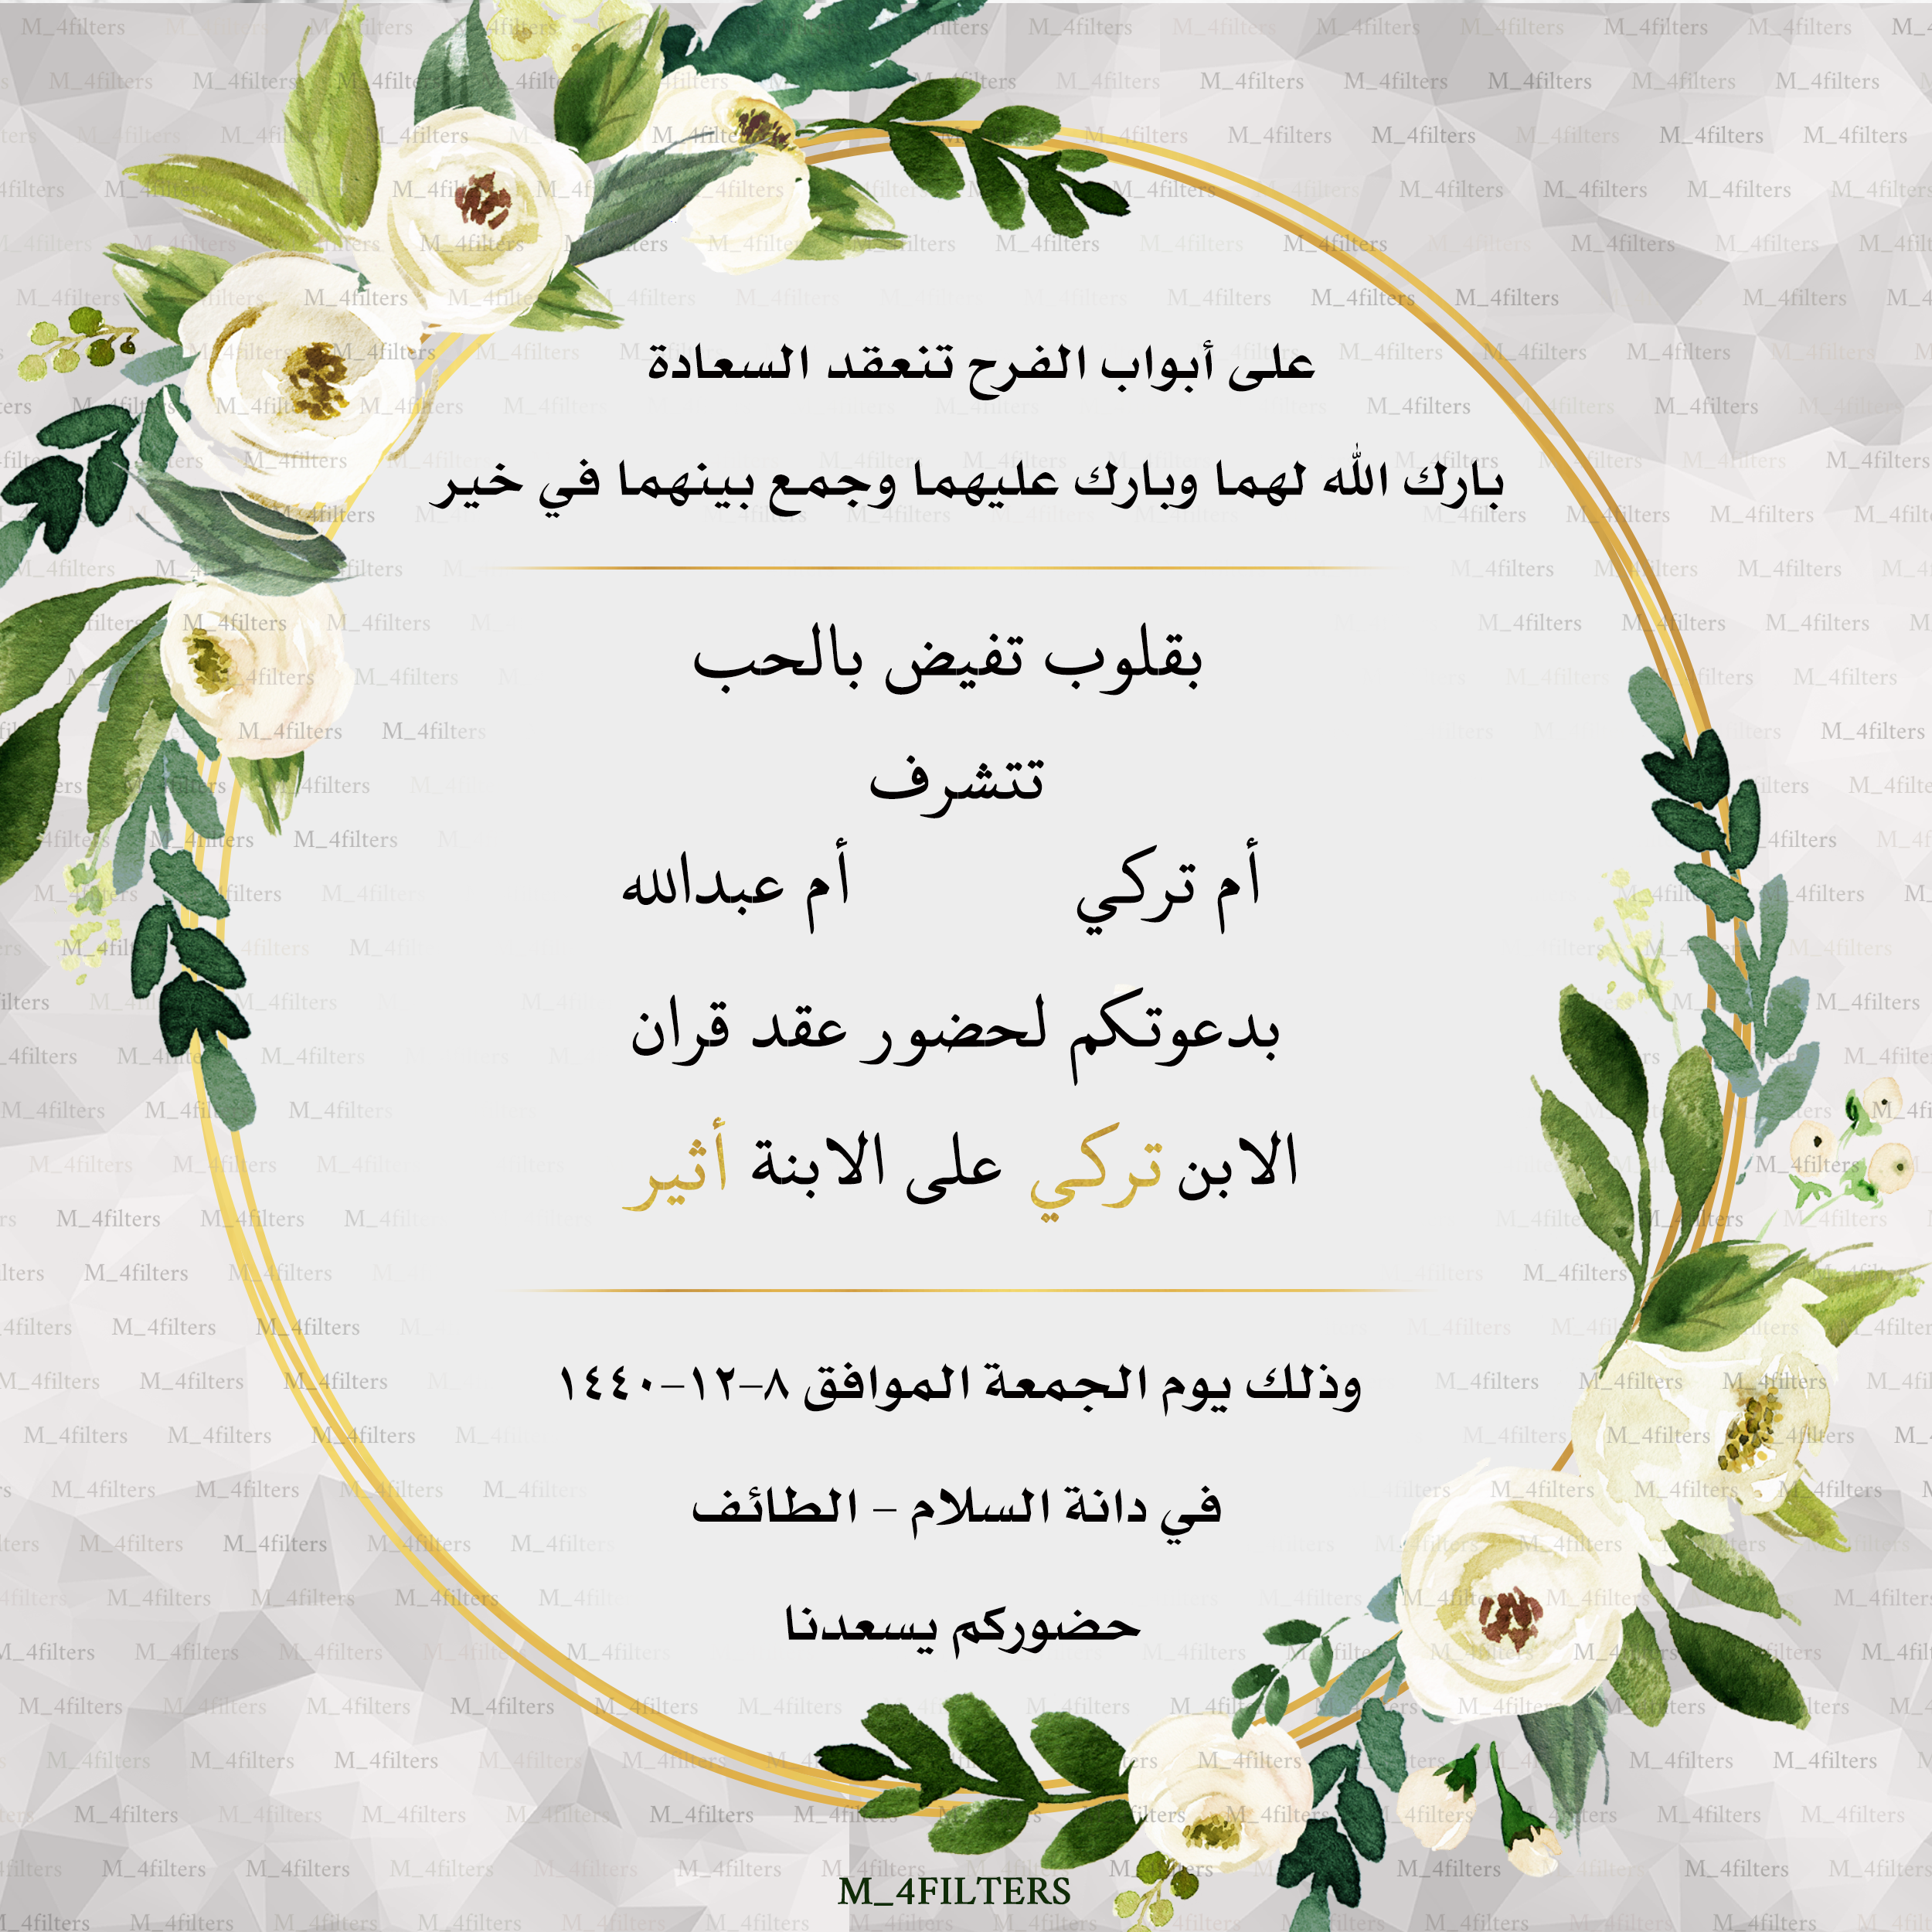 دعوة زواج دعوة عقد قران Wedding Invitation Card Design Simple Wedding Invitation Card Wedding Cards